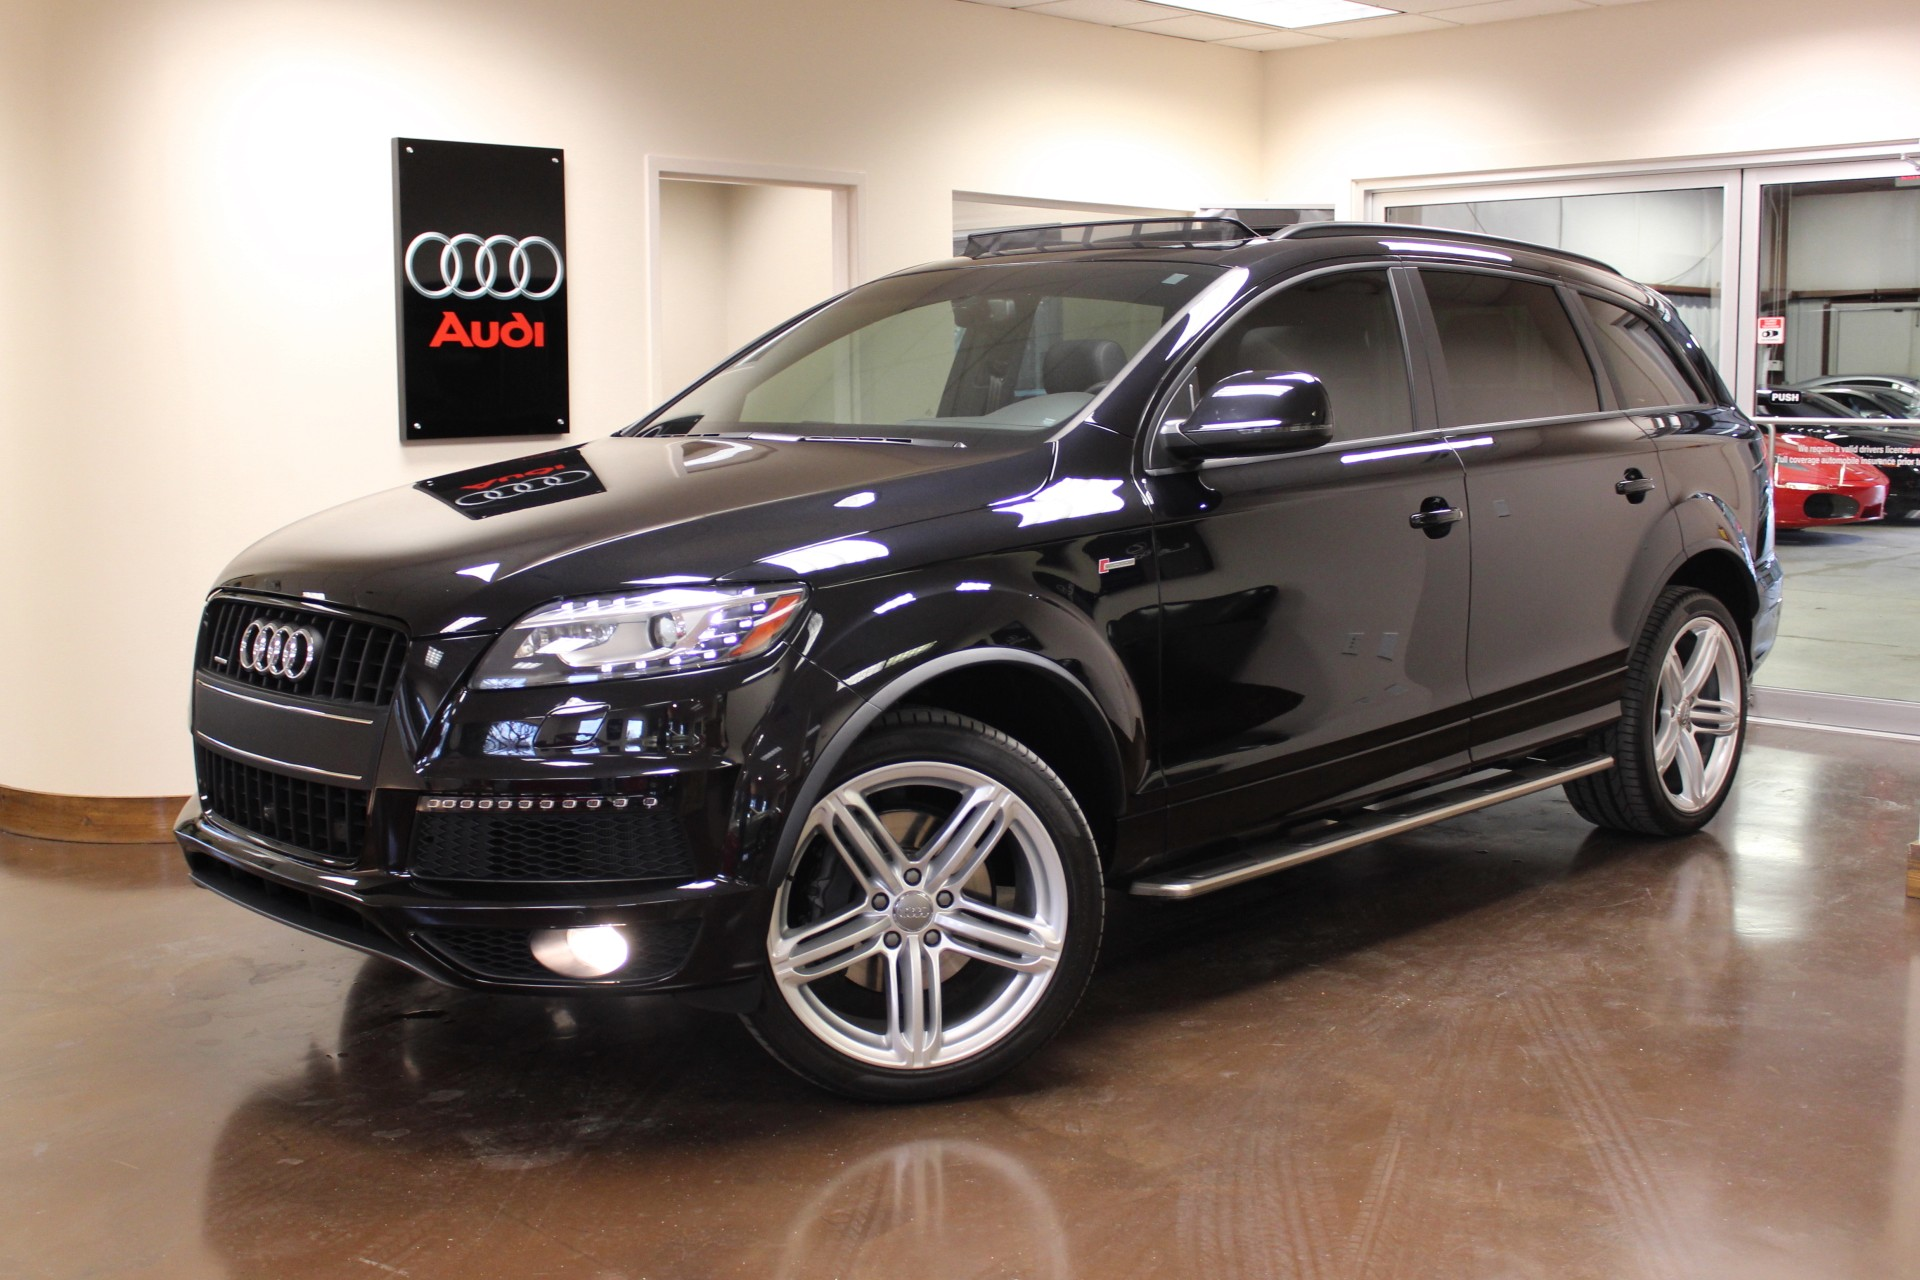 used 2014 audi q7 stock p2975a ultra luxury car from merlin auto group. Black Bedroom Furniture Sets. Home Design Ideas